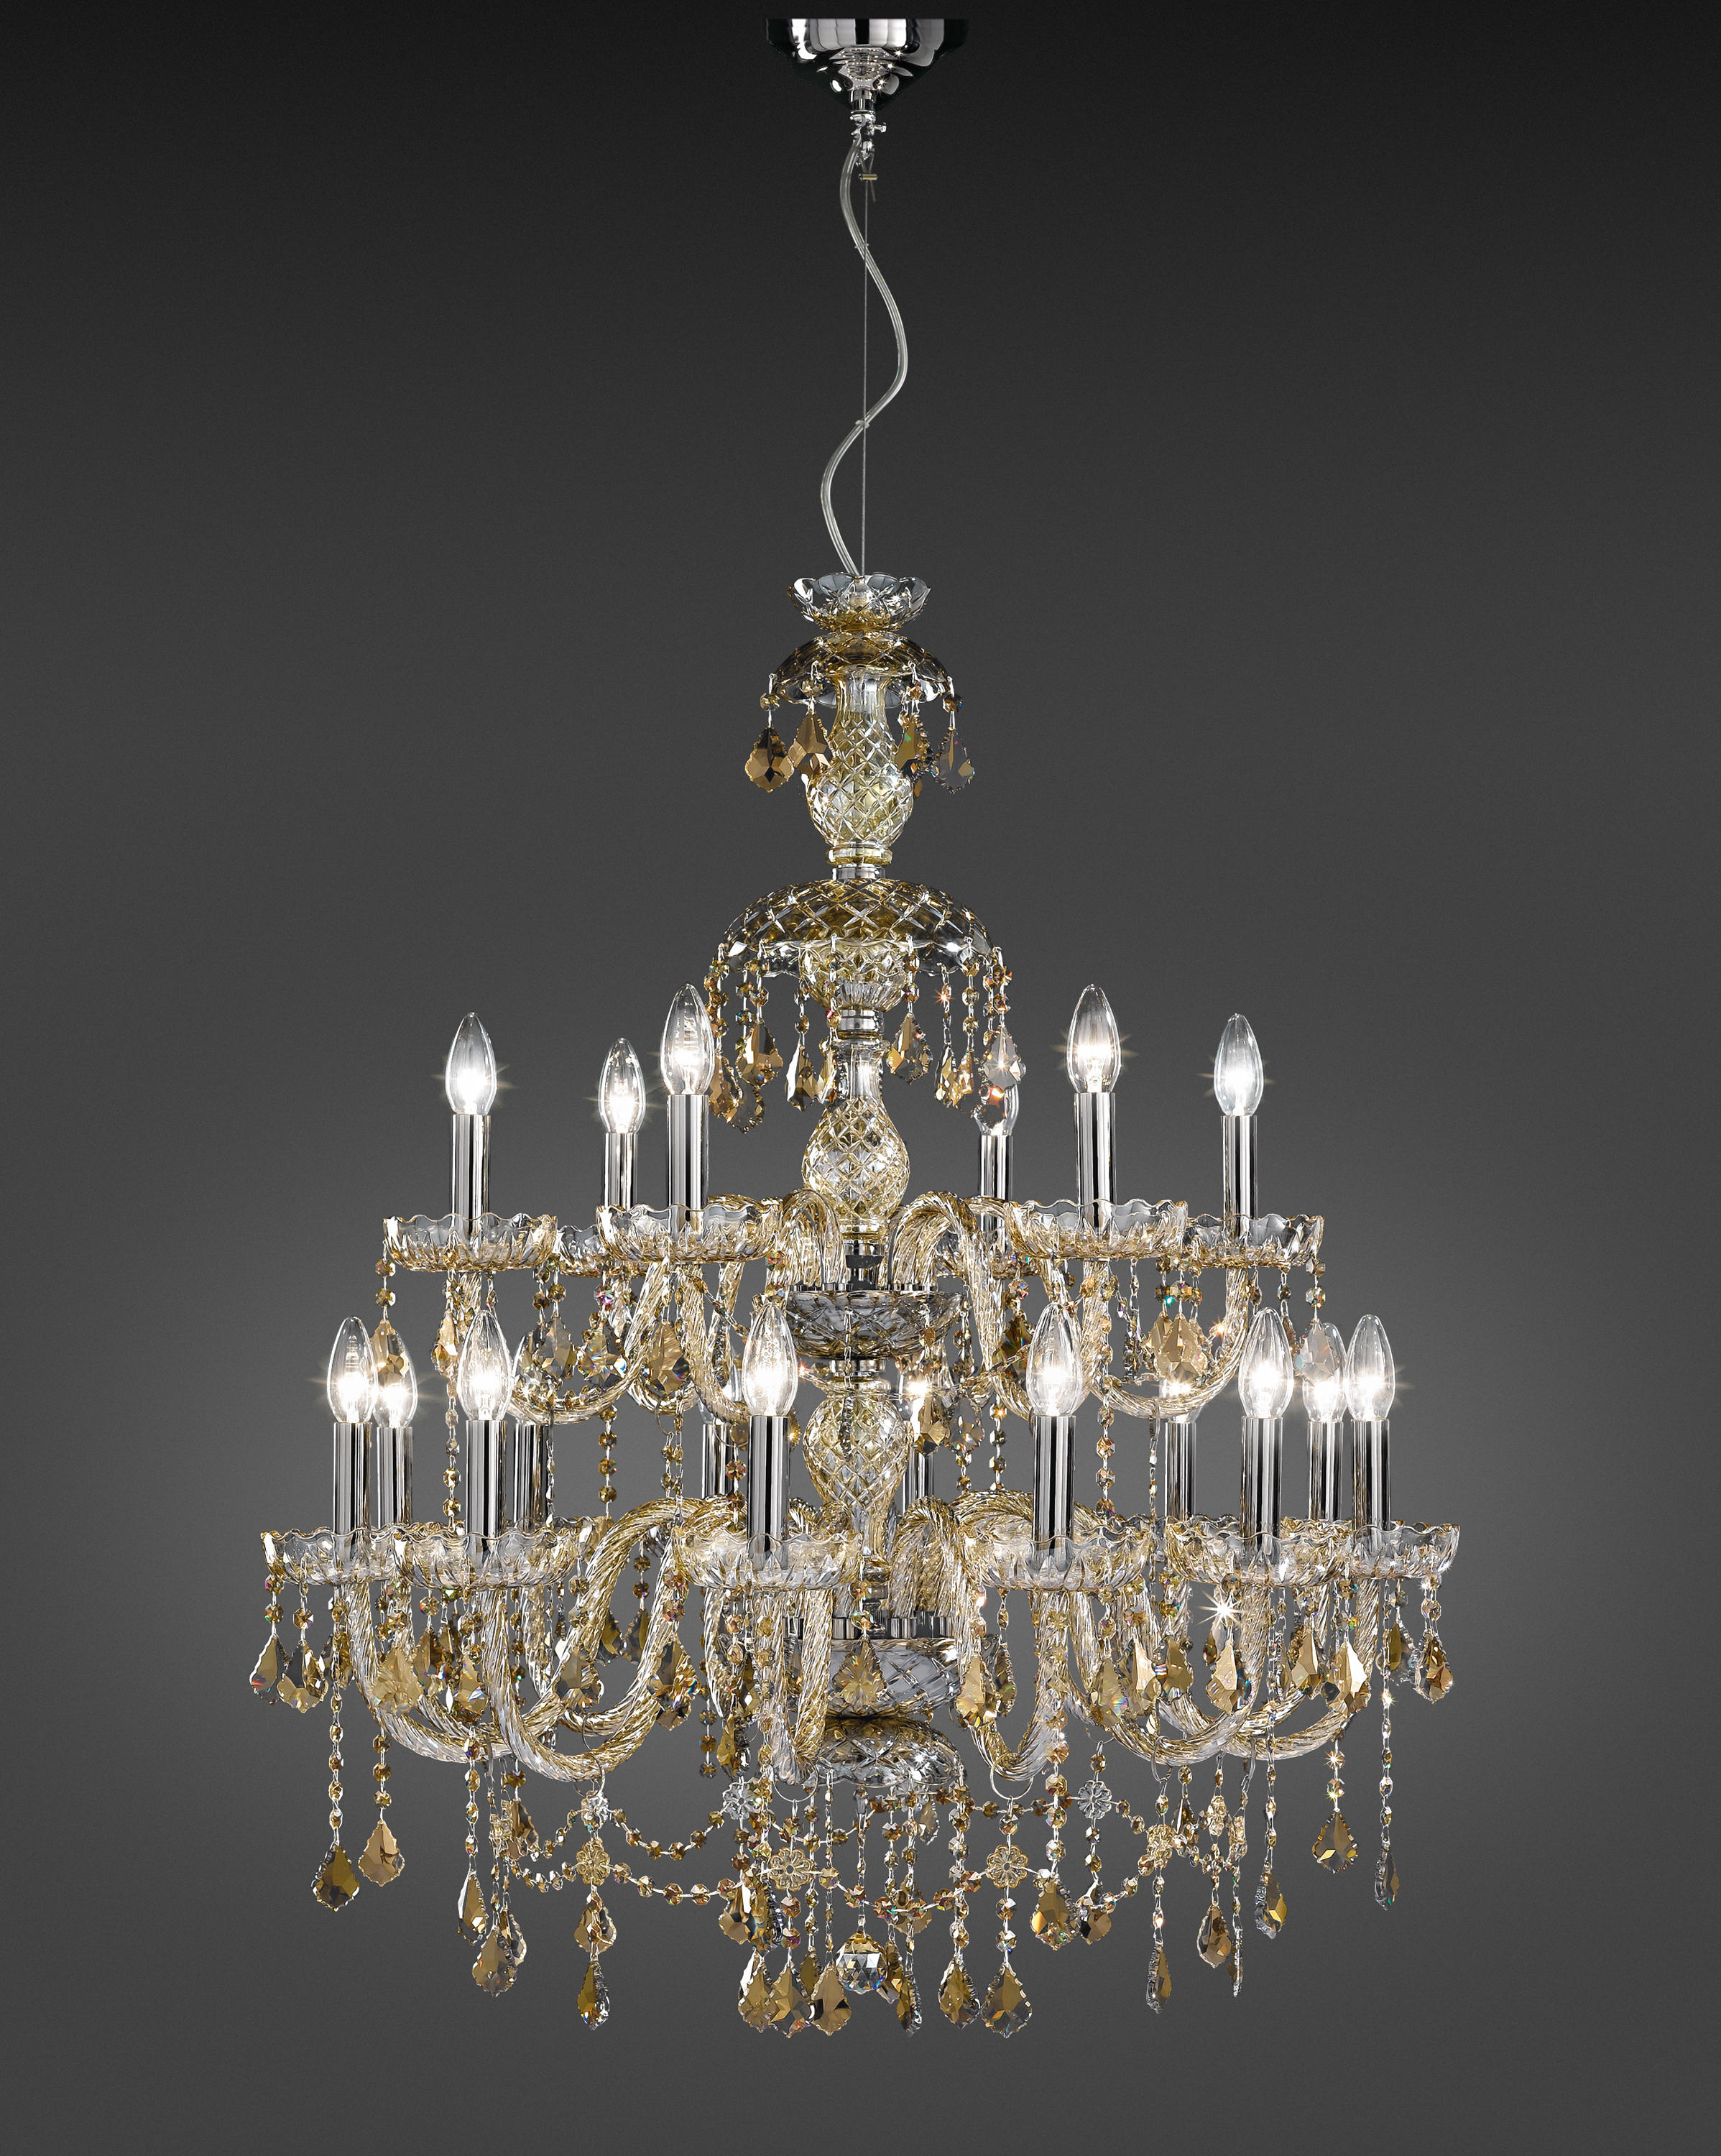 CHANDELIER Research and select ITALAMP products online